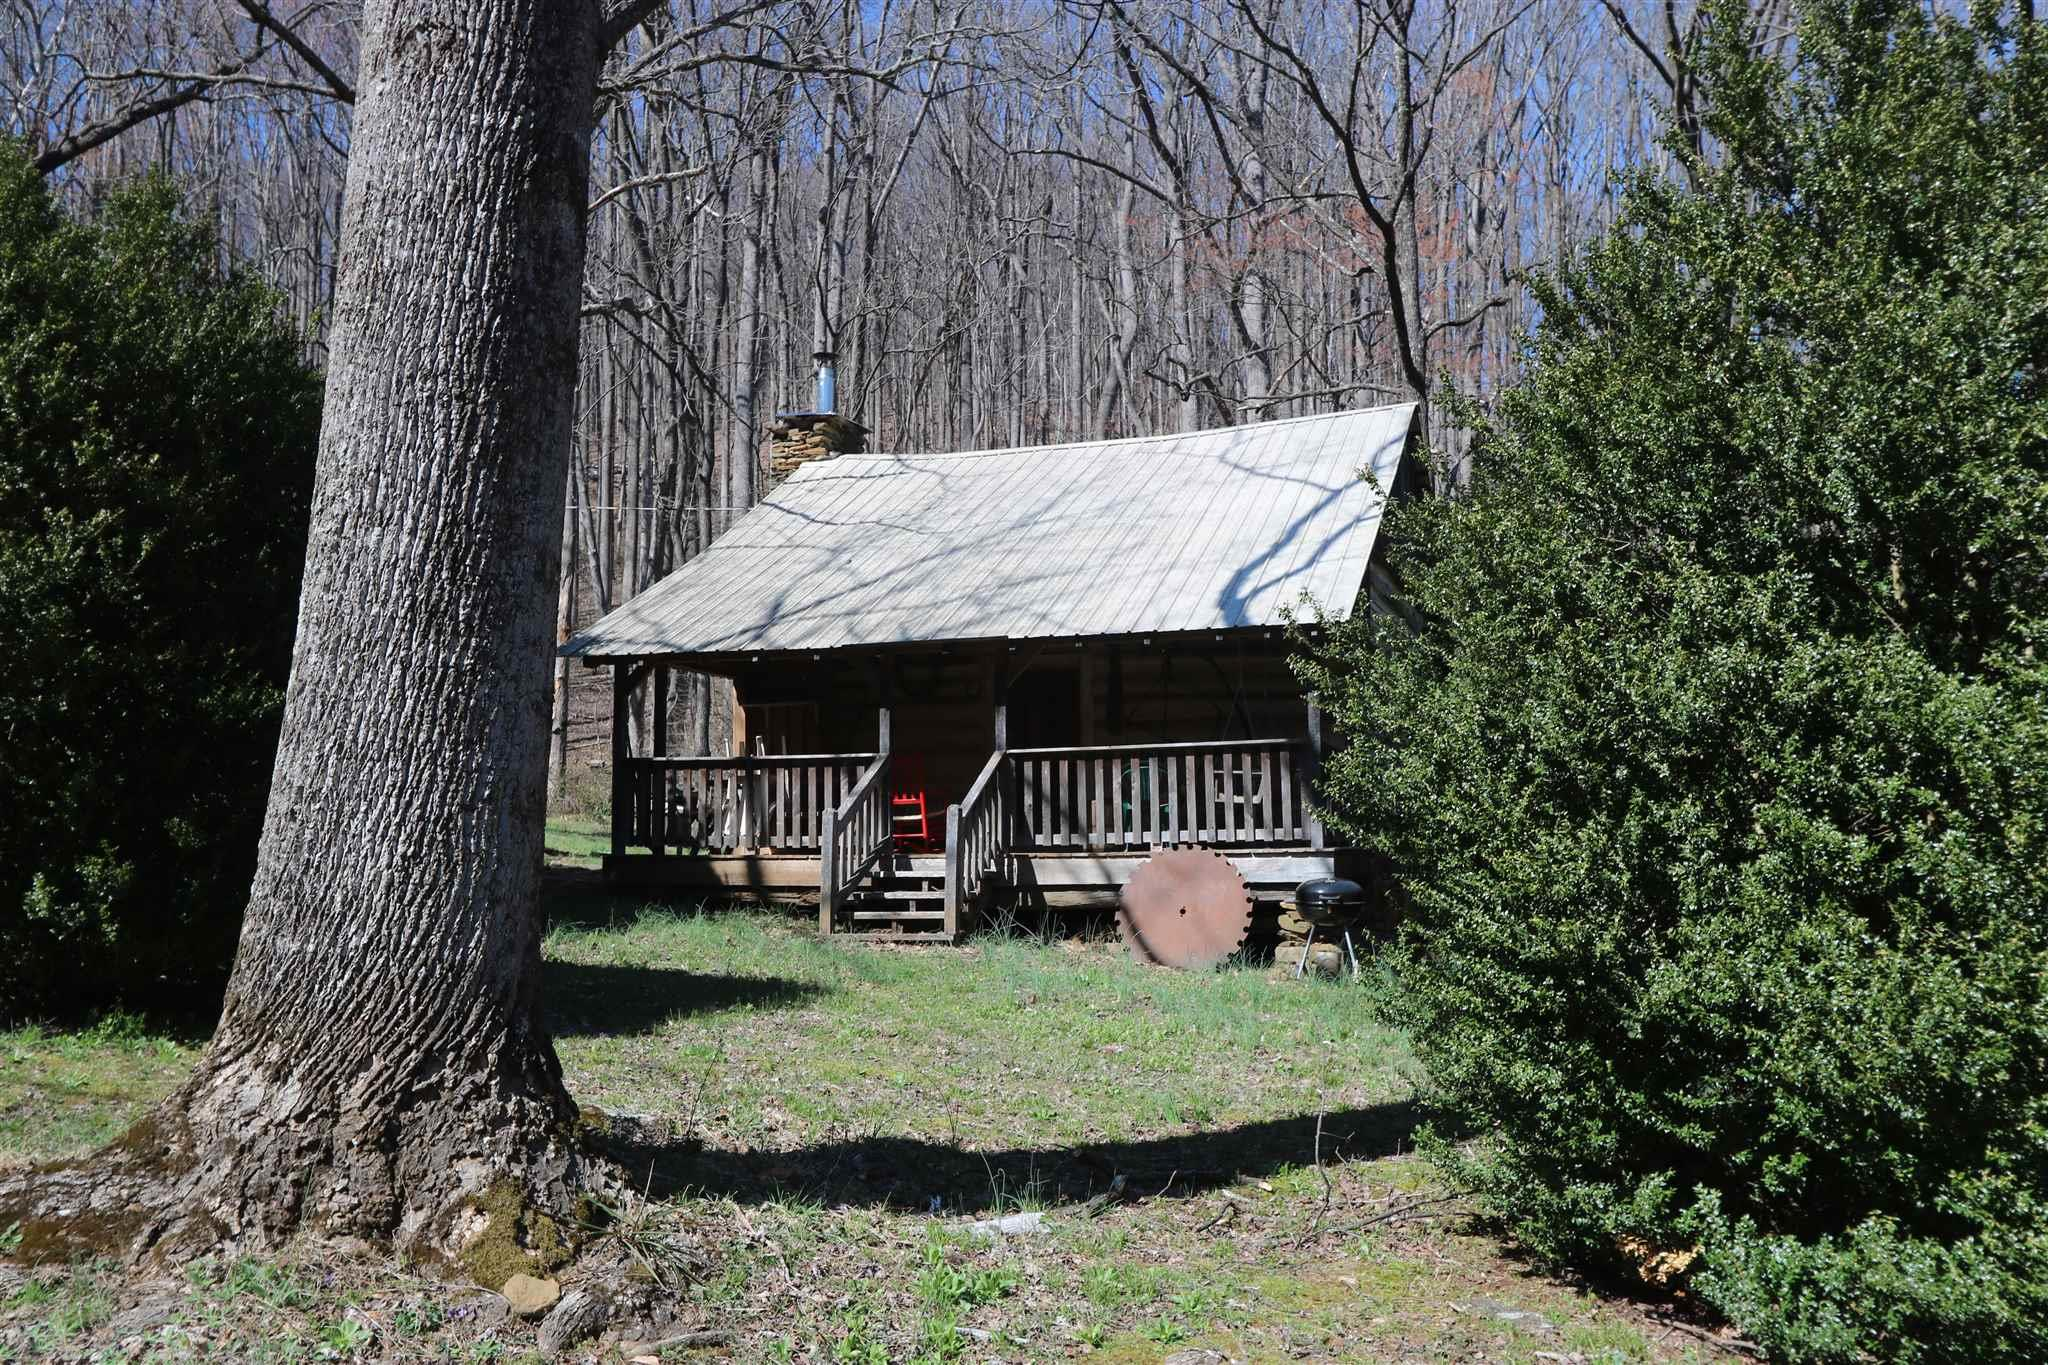 Charming Civil War era cabin with power and full bath on 19+/- acres on a private dead end road.  This place has lots of character and privacy but with good access.  Enjoy the peace and quite of the mountains in this log cabin home.  Come hike the woods and wade the brook.  Buyer will need to drill a new well.